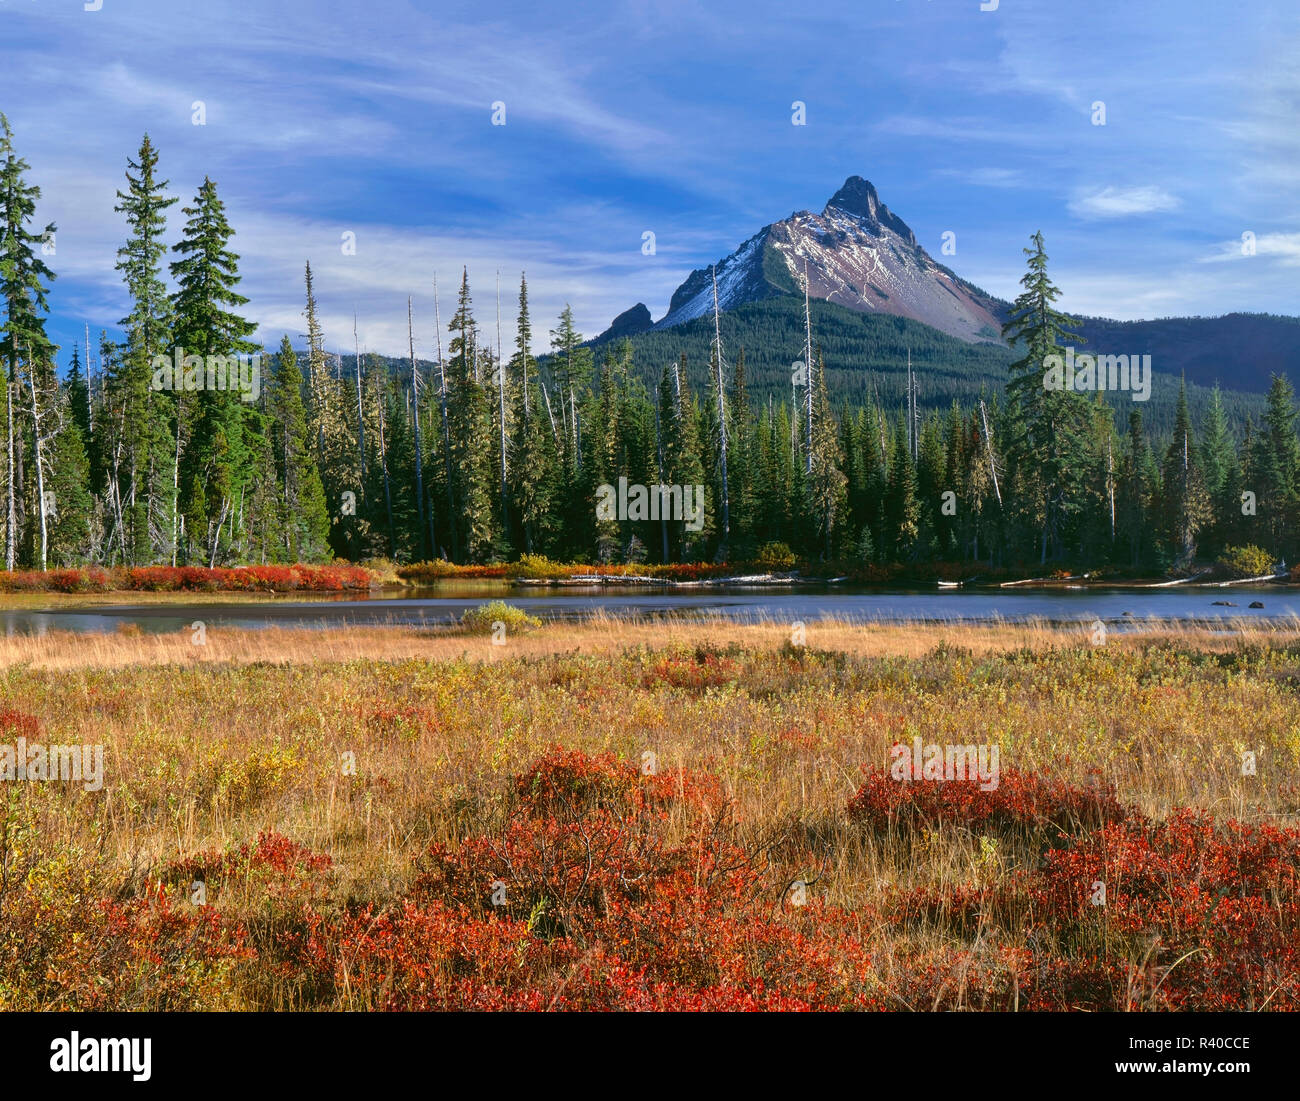 USA, Oregon, Willamette National Forest, Mount Washington rises above conifer forest, small lake and autumn-colored huckleberry and willows. - Stock Image